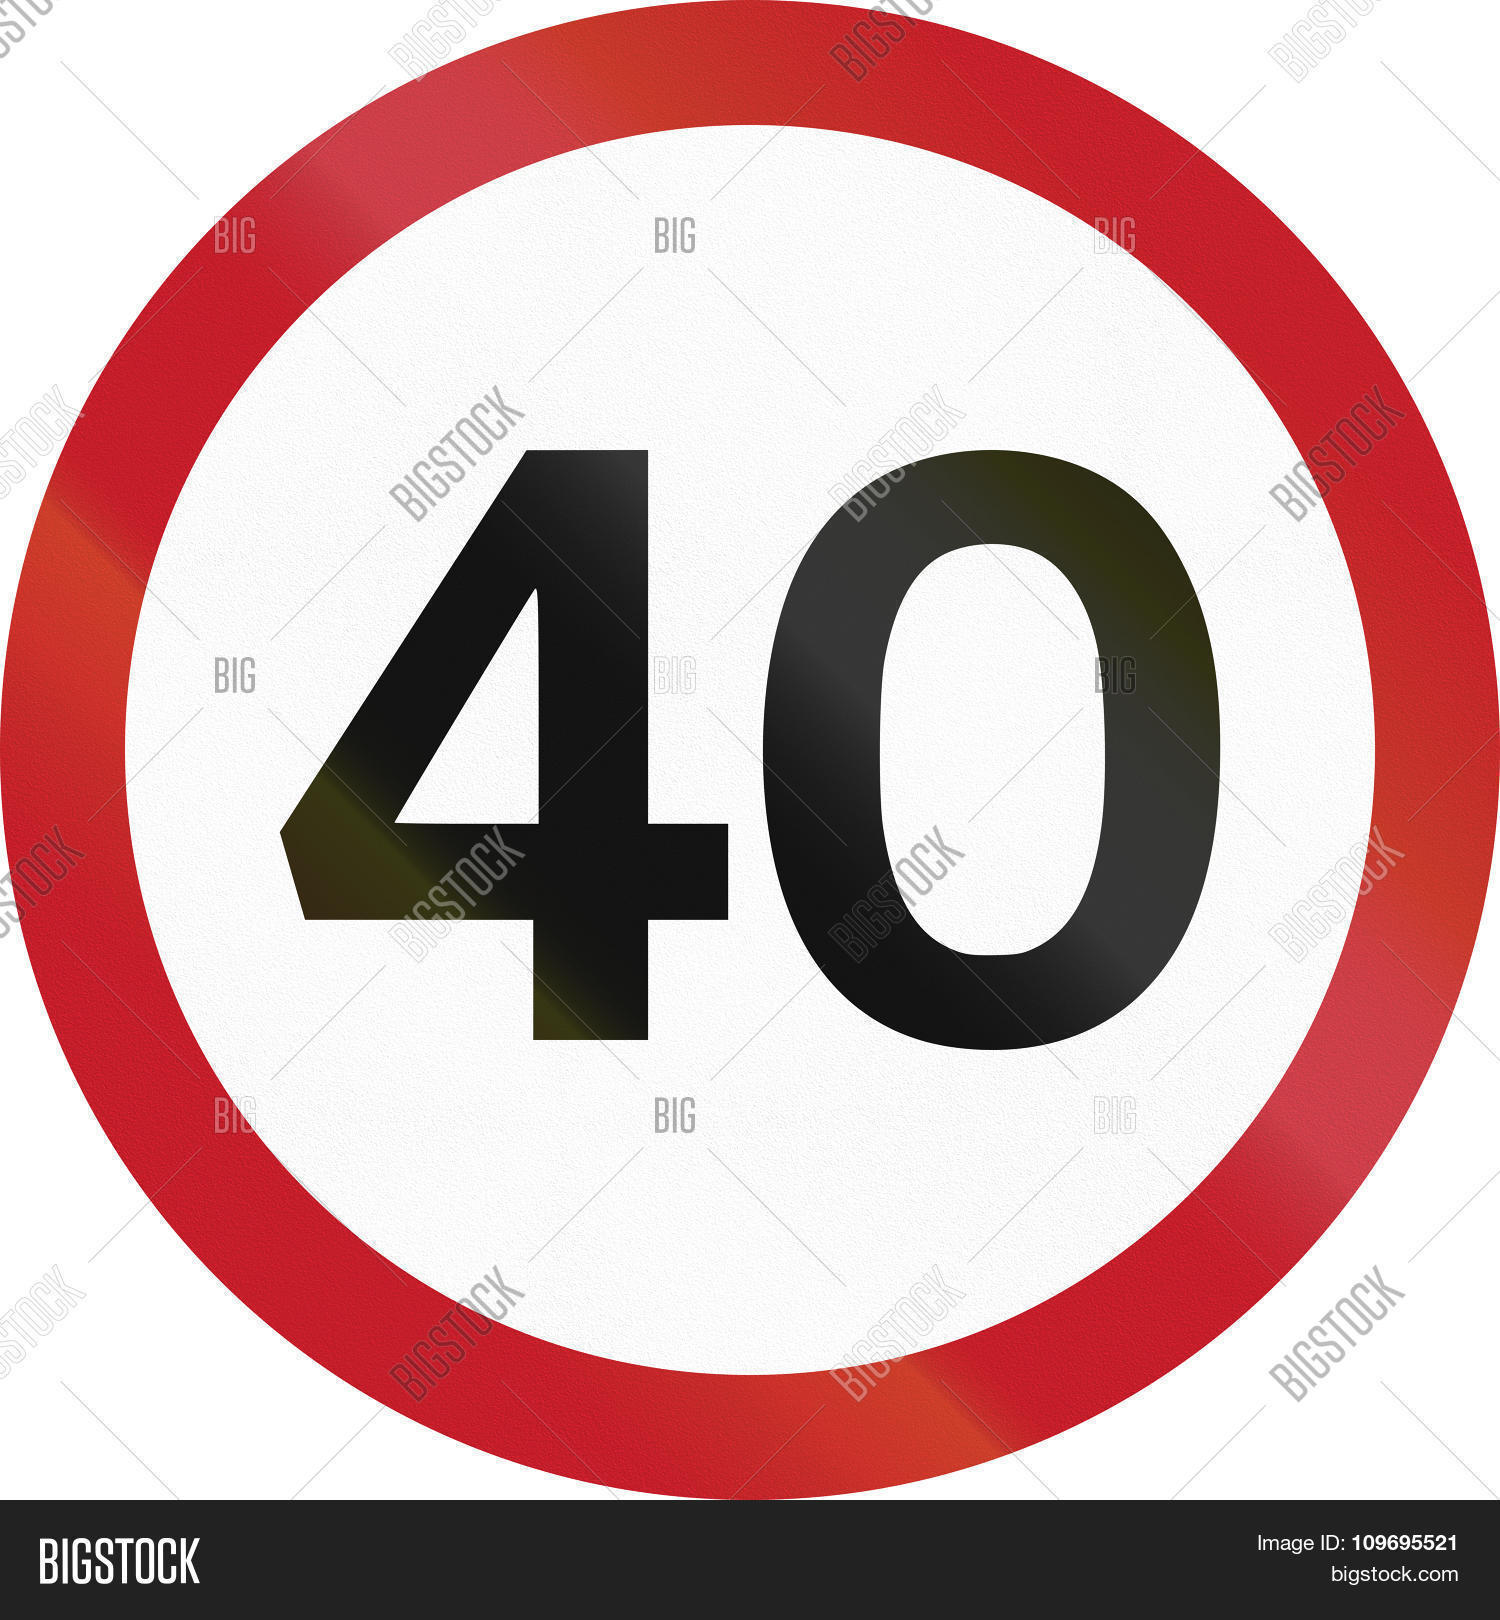 Road sign philippines 40 kph image photo bigstock road sign in the philippines 40 kph speed limit sign in the philippines buycottarizona Image collections